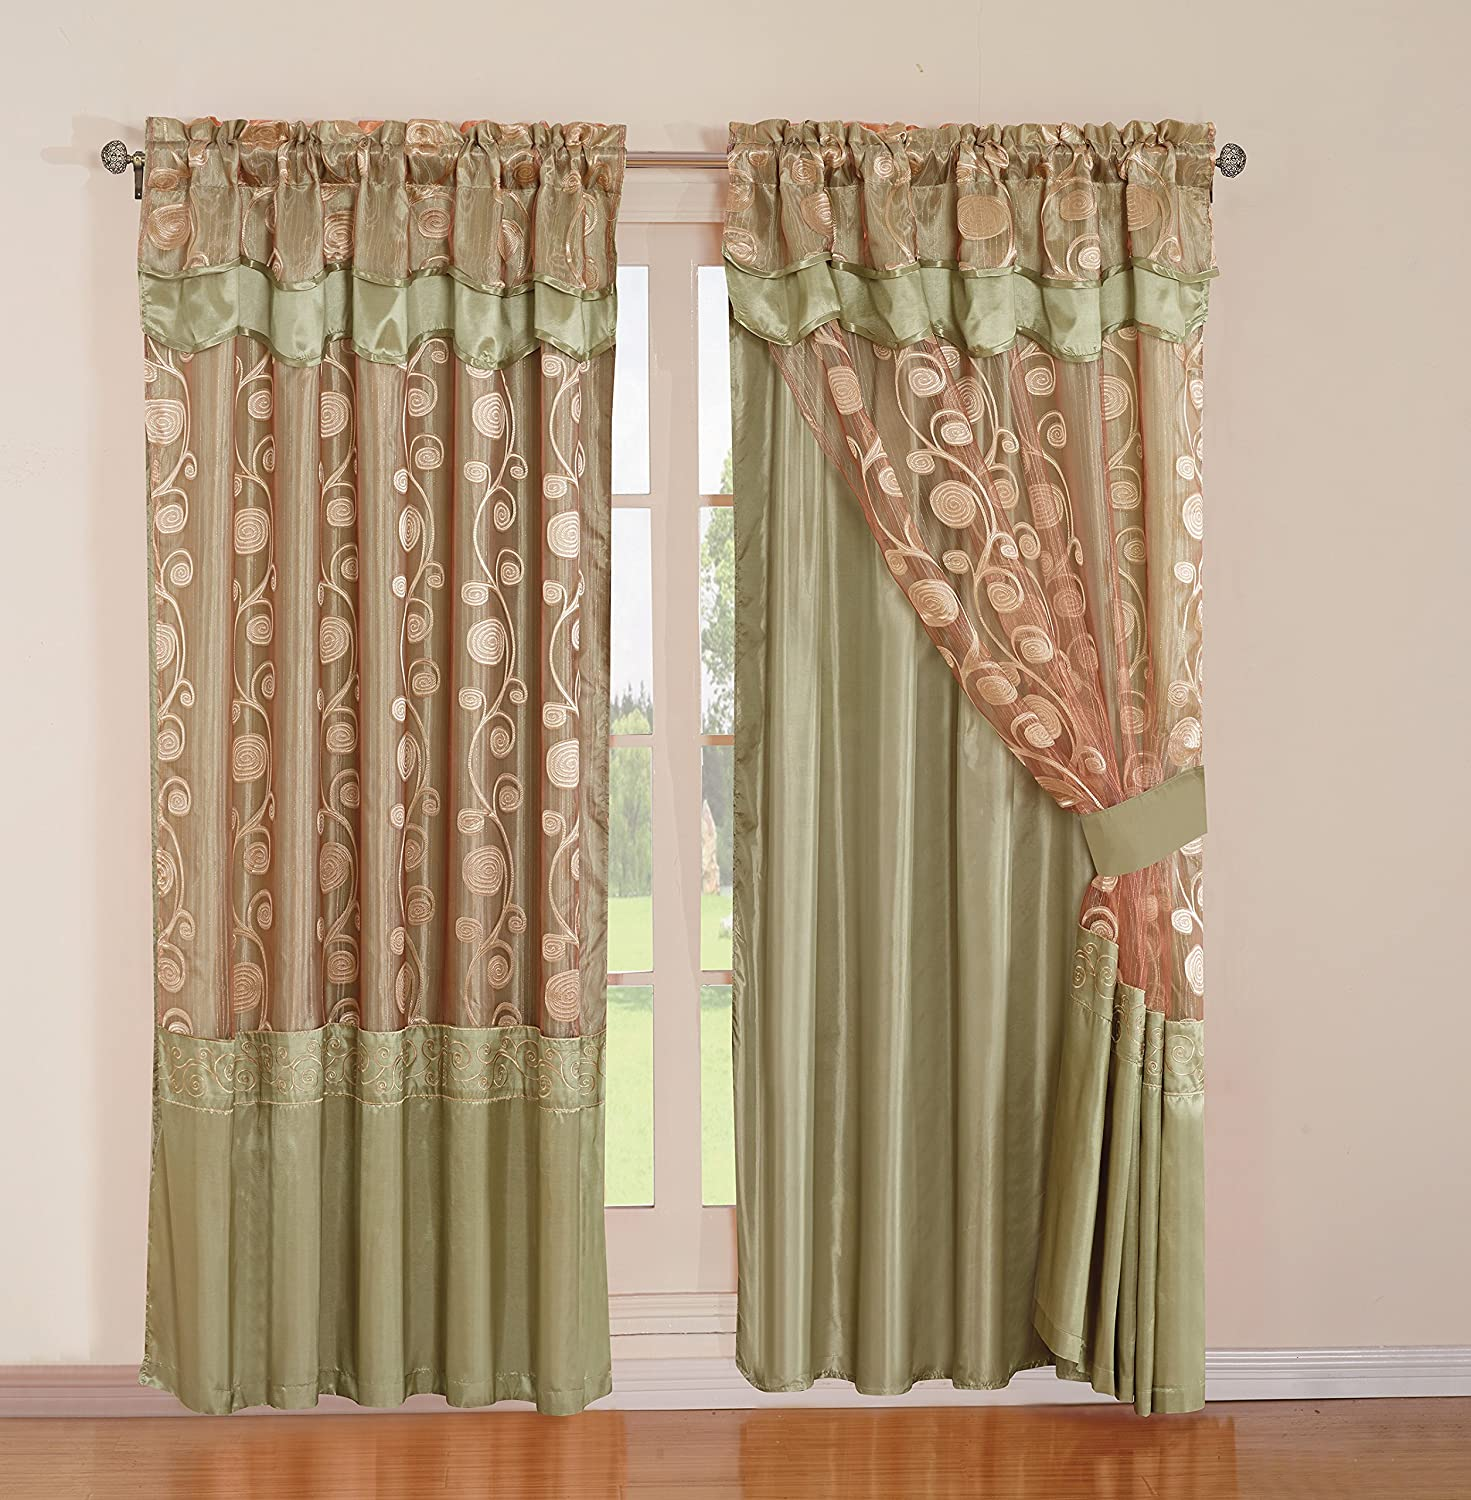 2 Pieces Embroidery Rod Pocket Window Curtains/ drape/ panels/ treatment with attached Valances, Backing and Tied Back Green